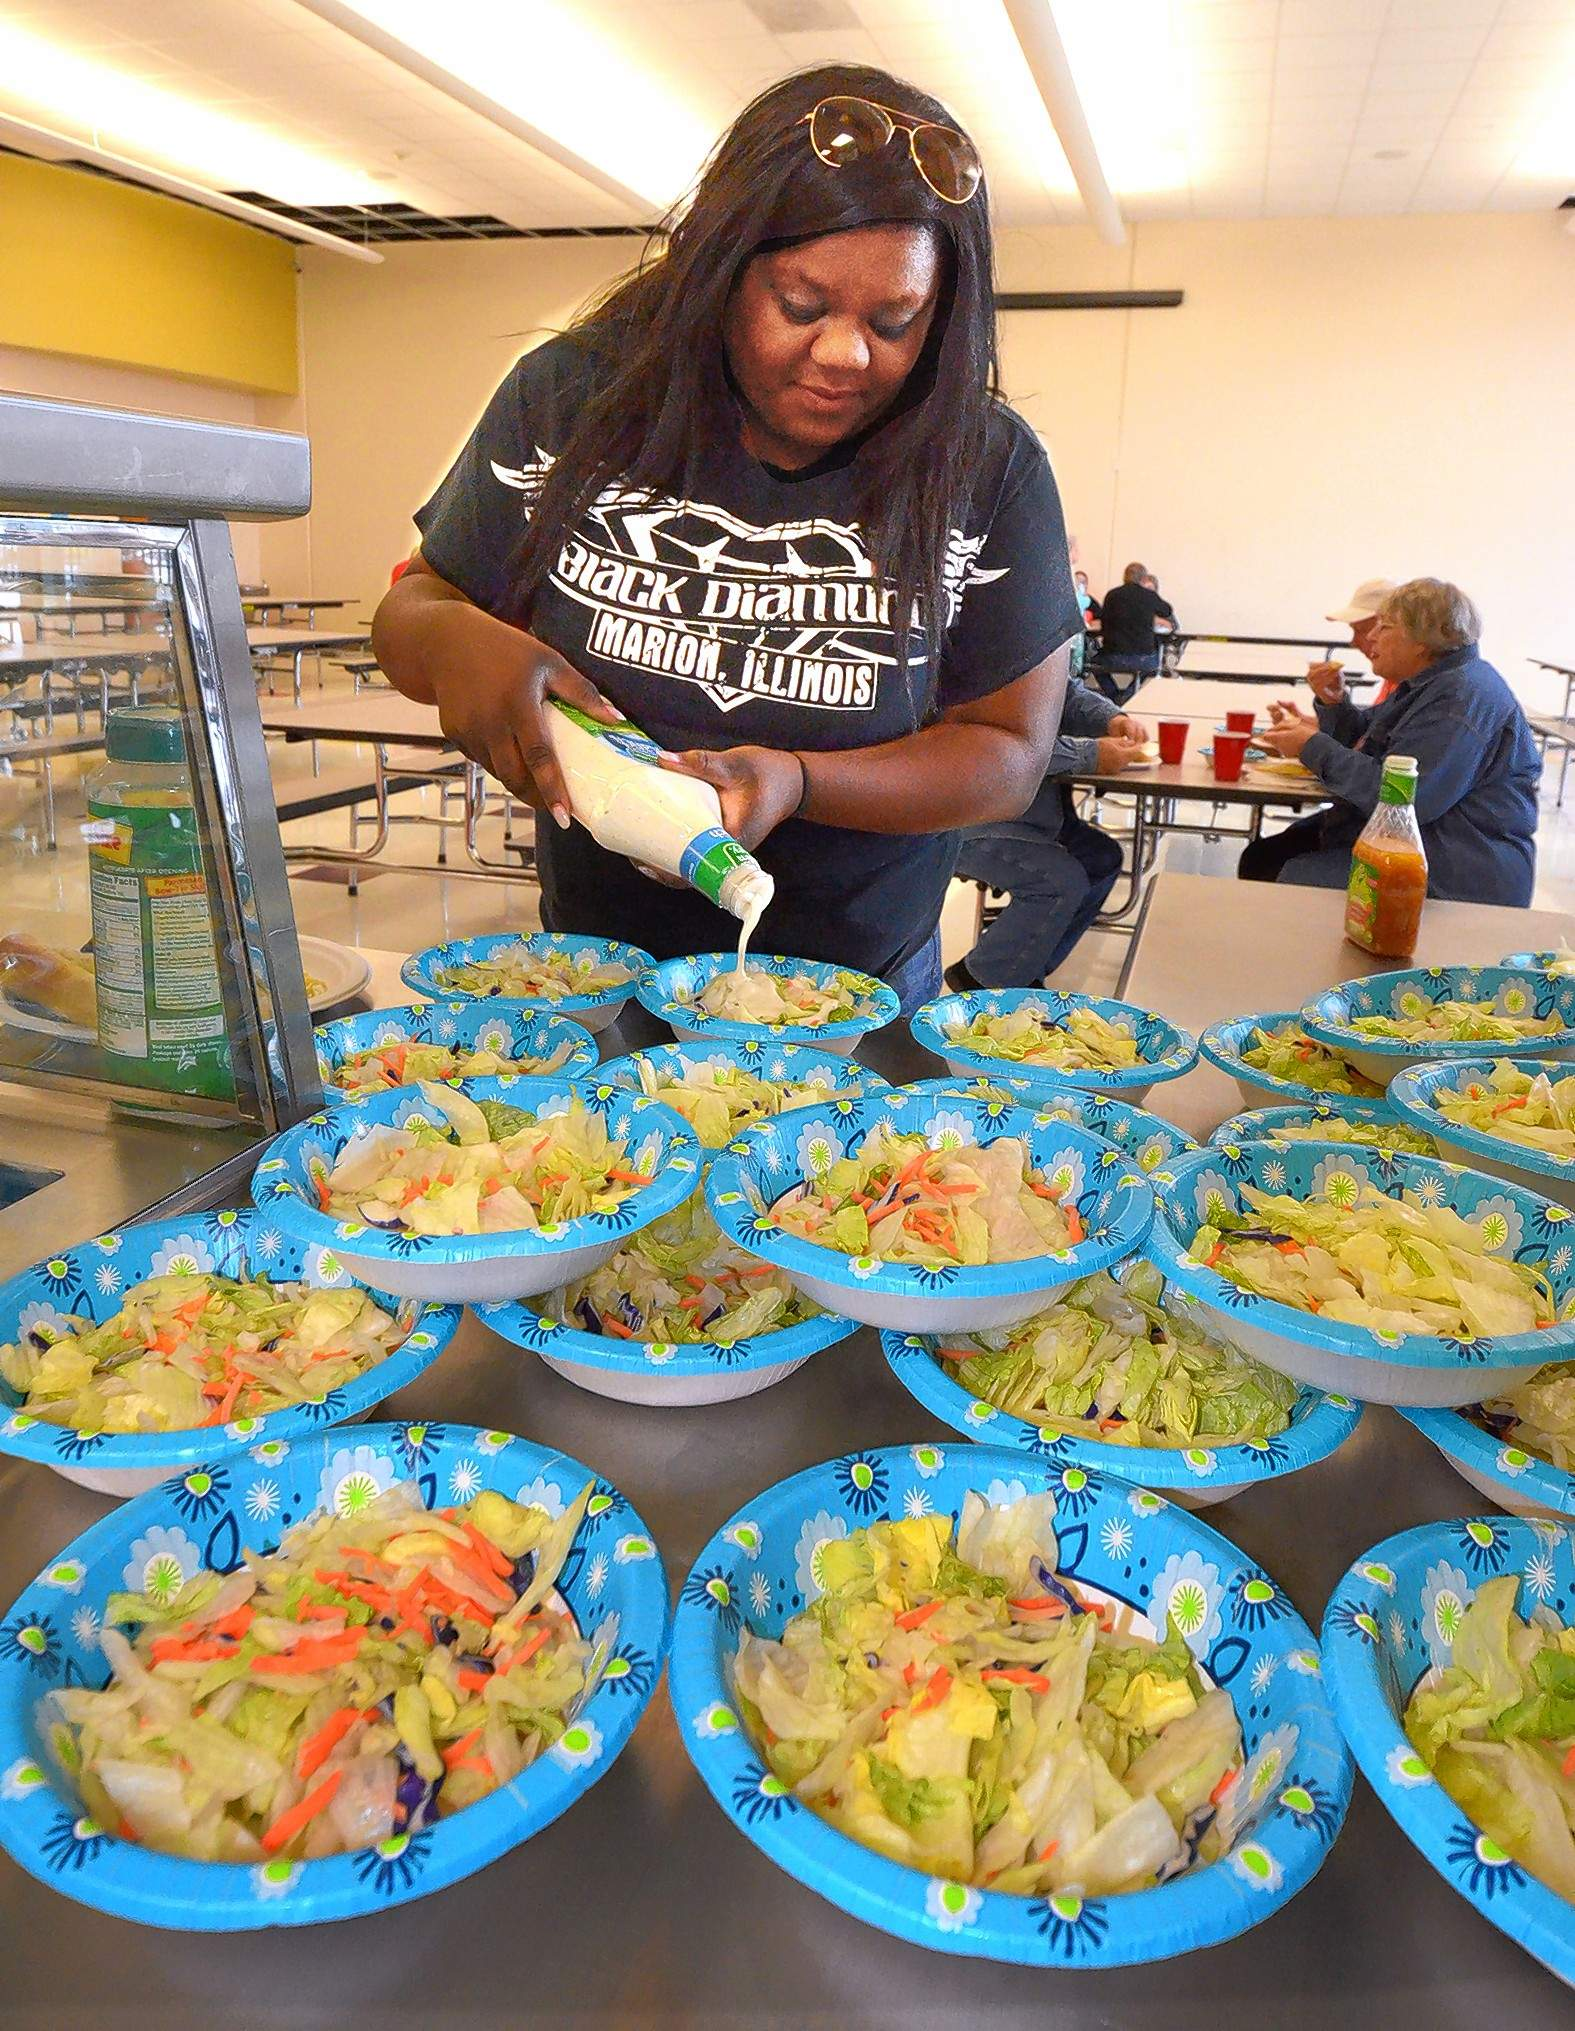 Dana Felts added dressing to her salad Saturday evening at Adams Grade School during the Creal Springs Park District's spaghetti fundraiser benefiting the community's annual Wonder Water Reunion.